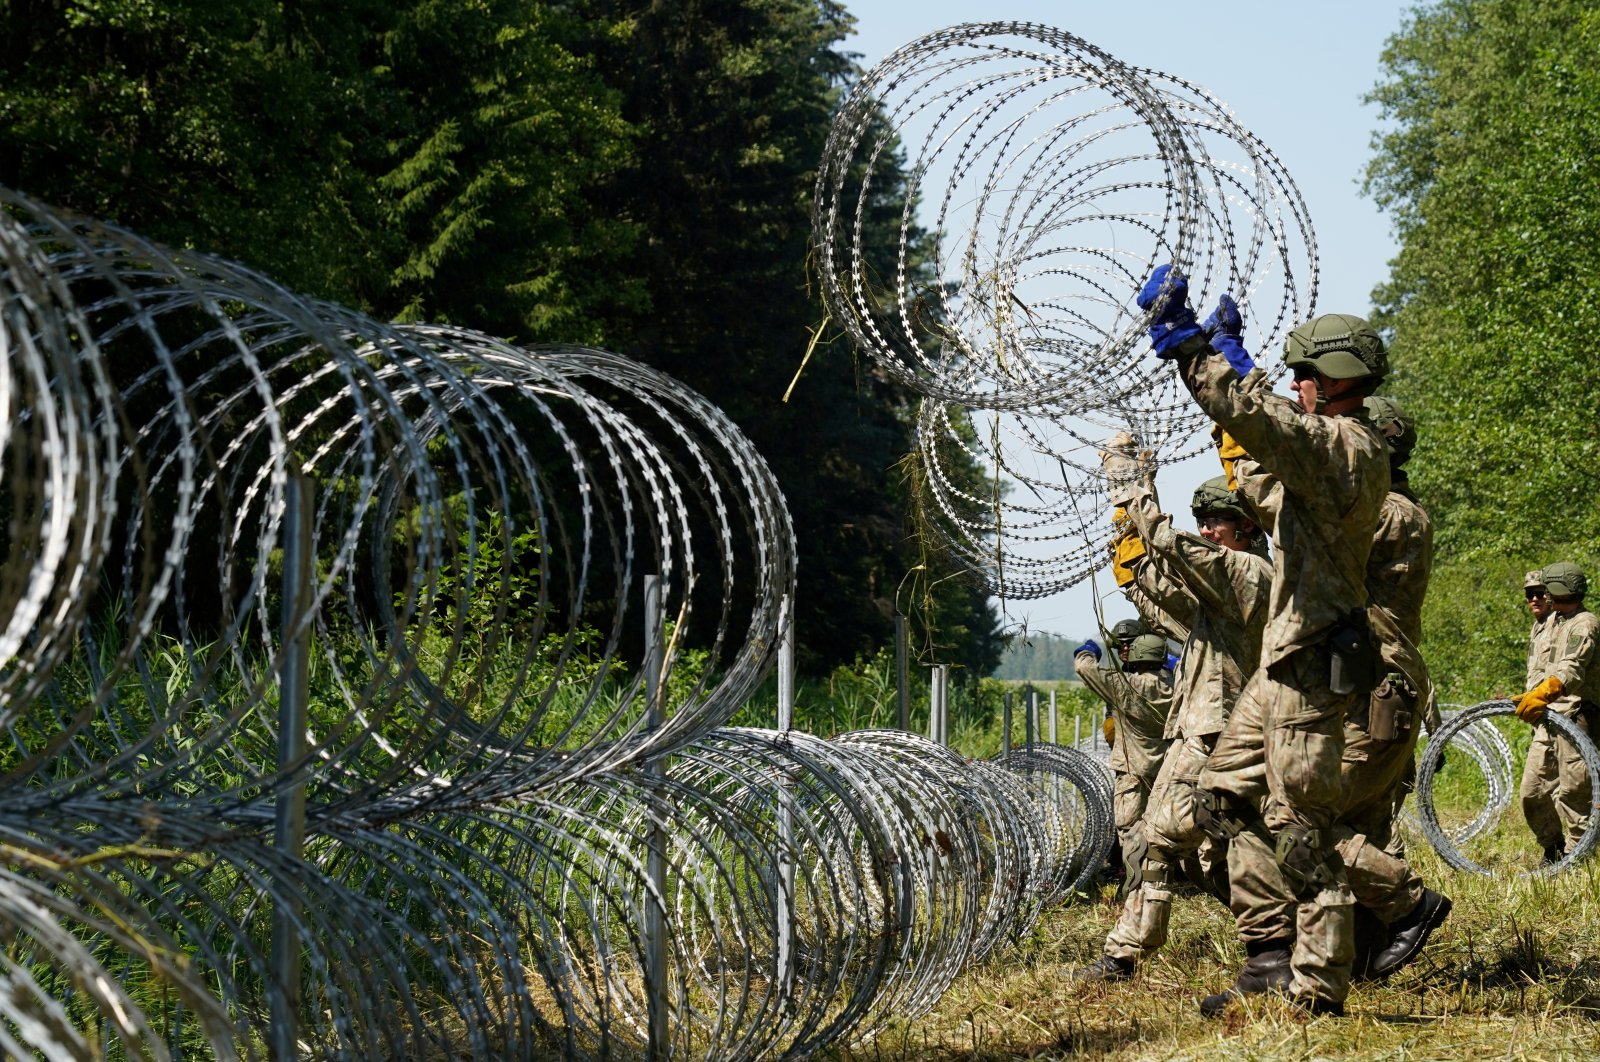 Lithuanian army soldiers install razor wire on the border with Belarus in Druskininkai, Lithuania July 9, 2021. (Reuters Photo)